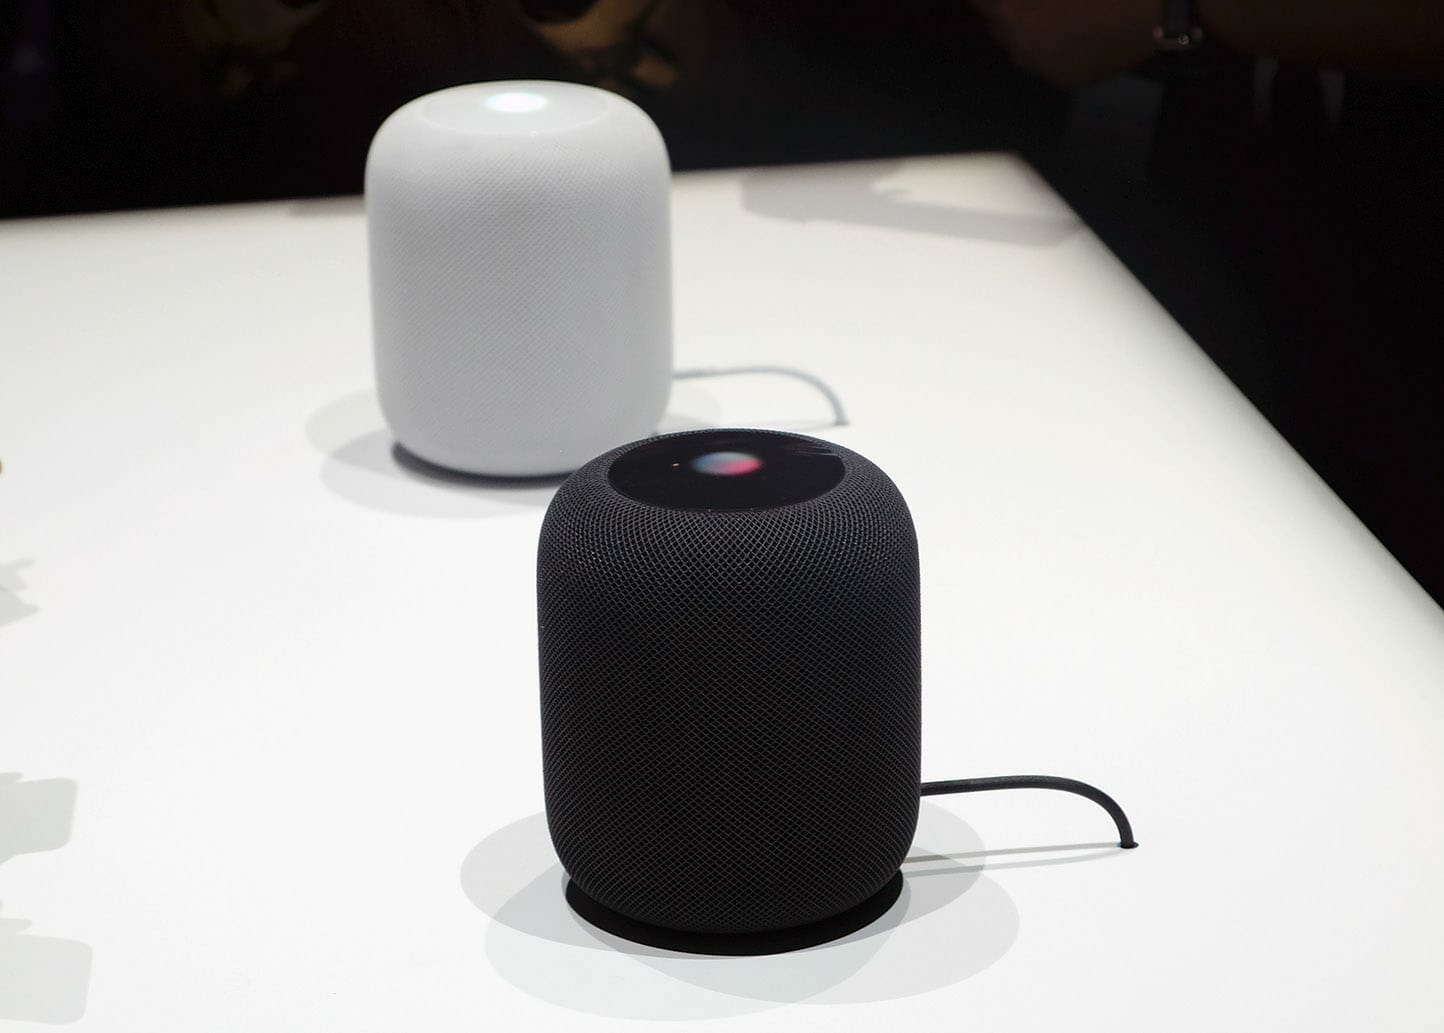 Meet the Apple's New HomePod Speakers